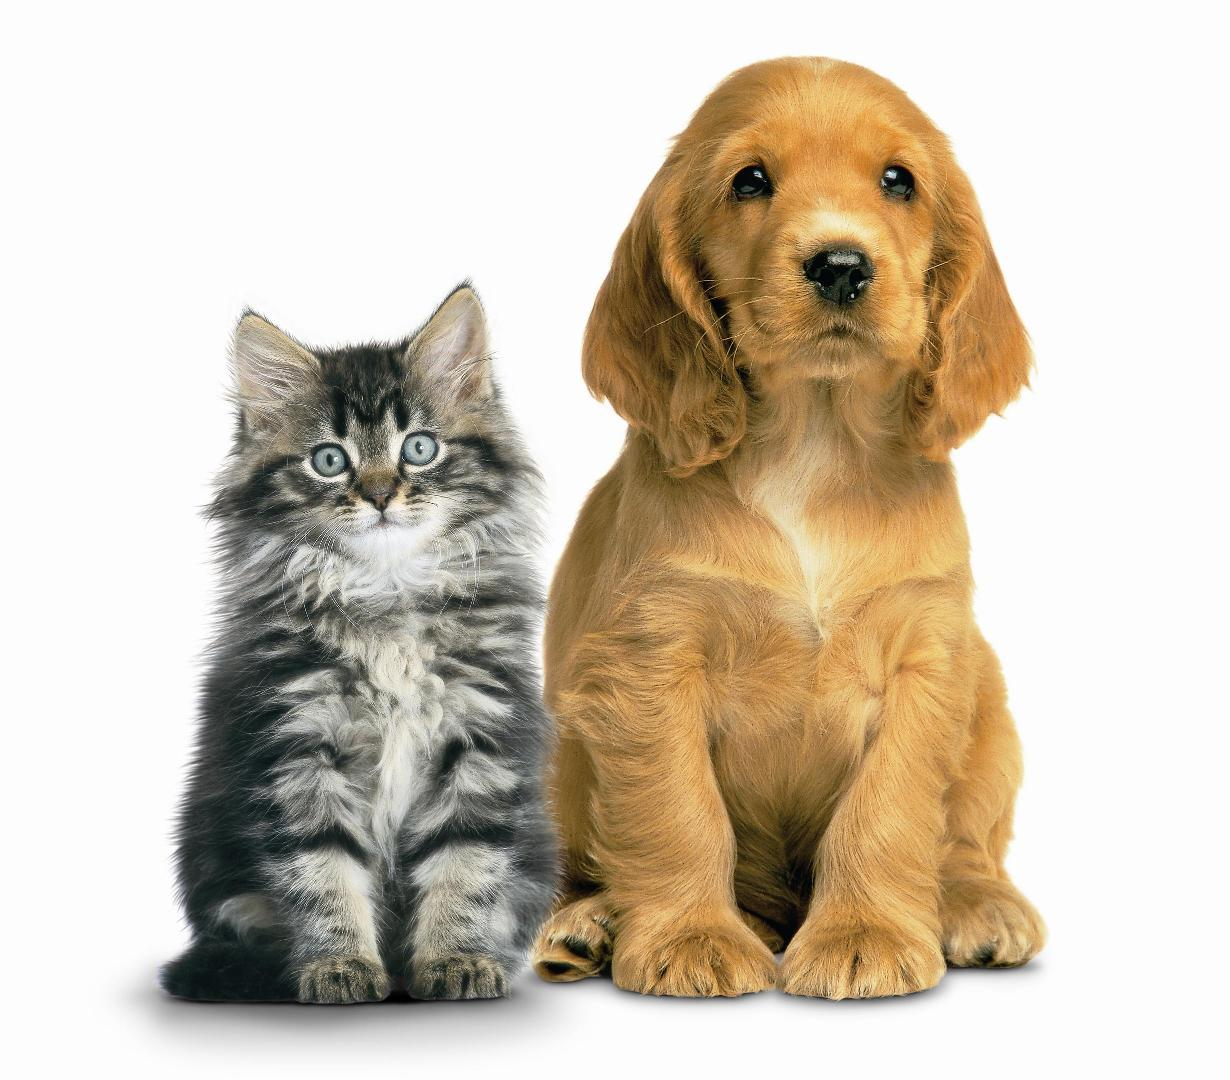 Dog And Cat Wallpaper - WallpaperSafari